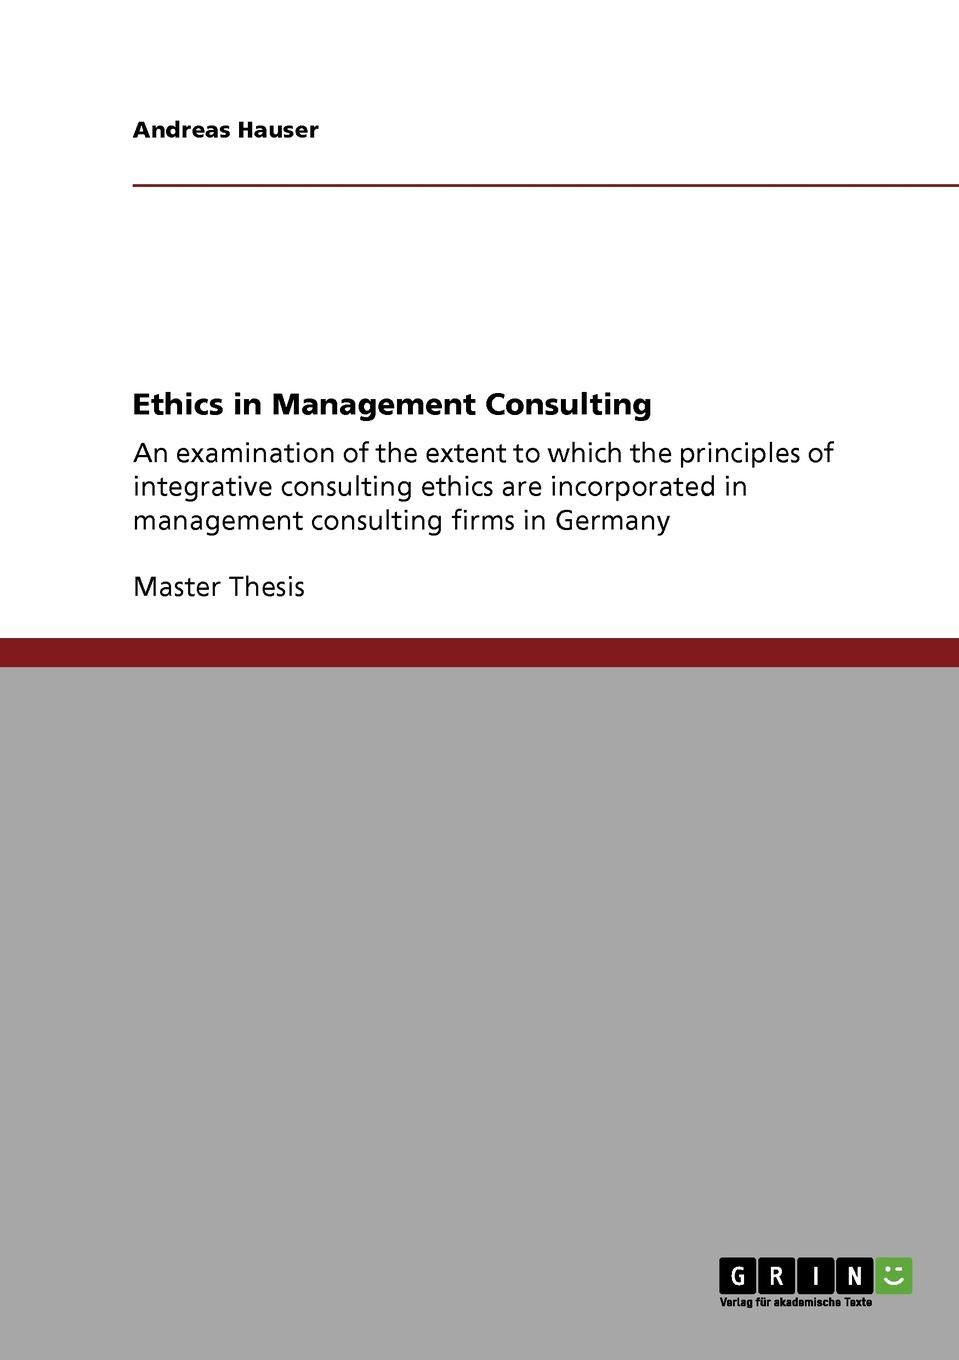 Andreas Hauser Ethics in Management Consulting цены